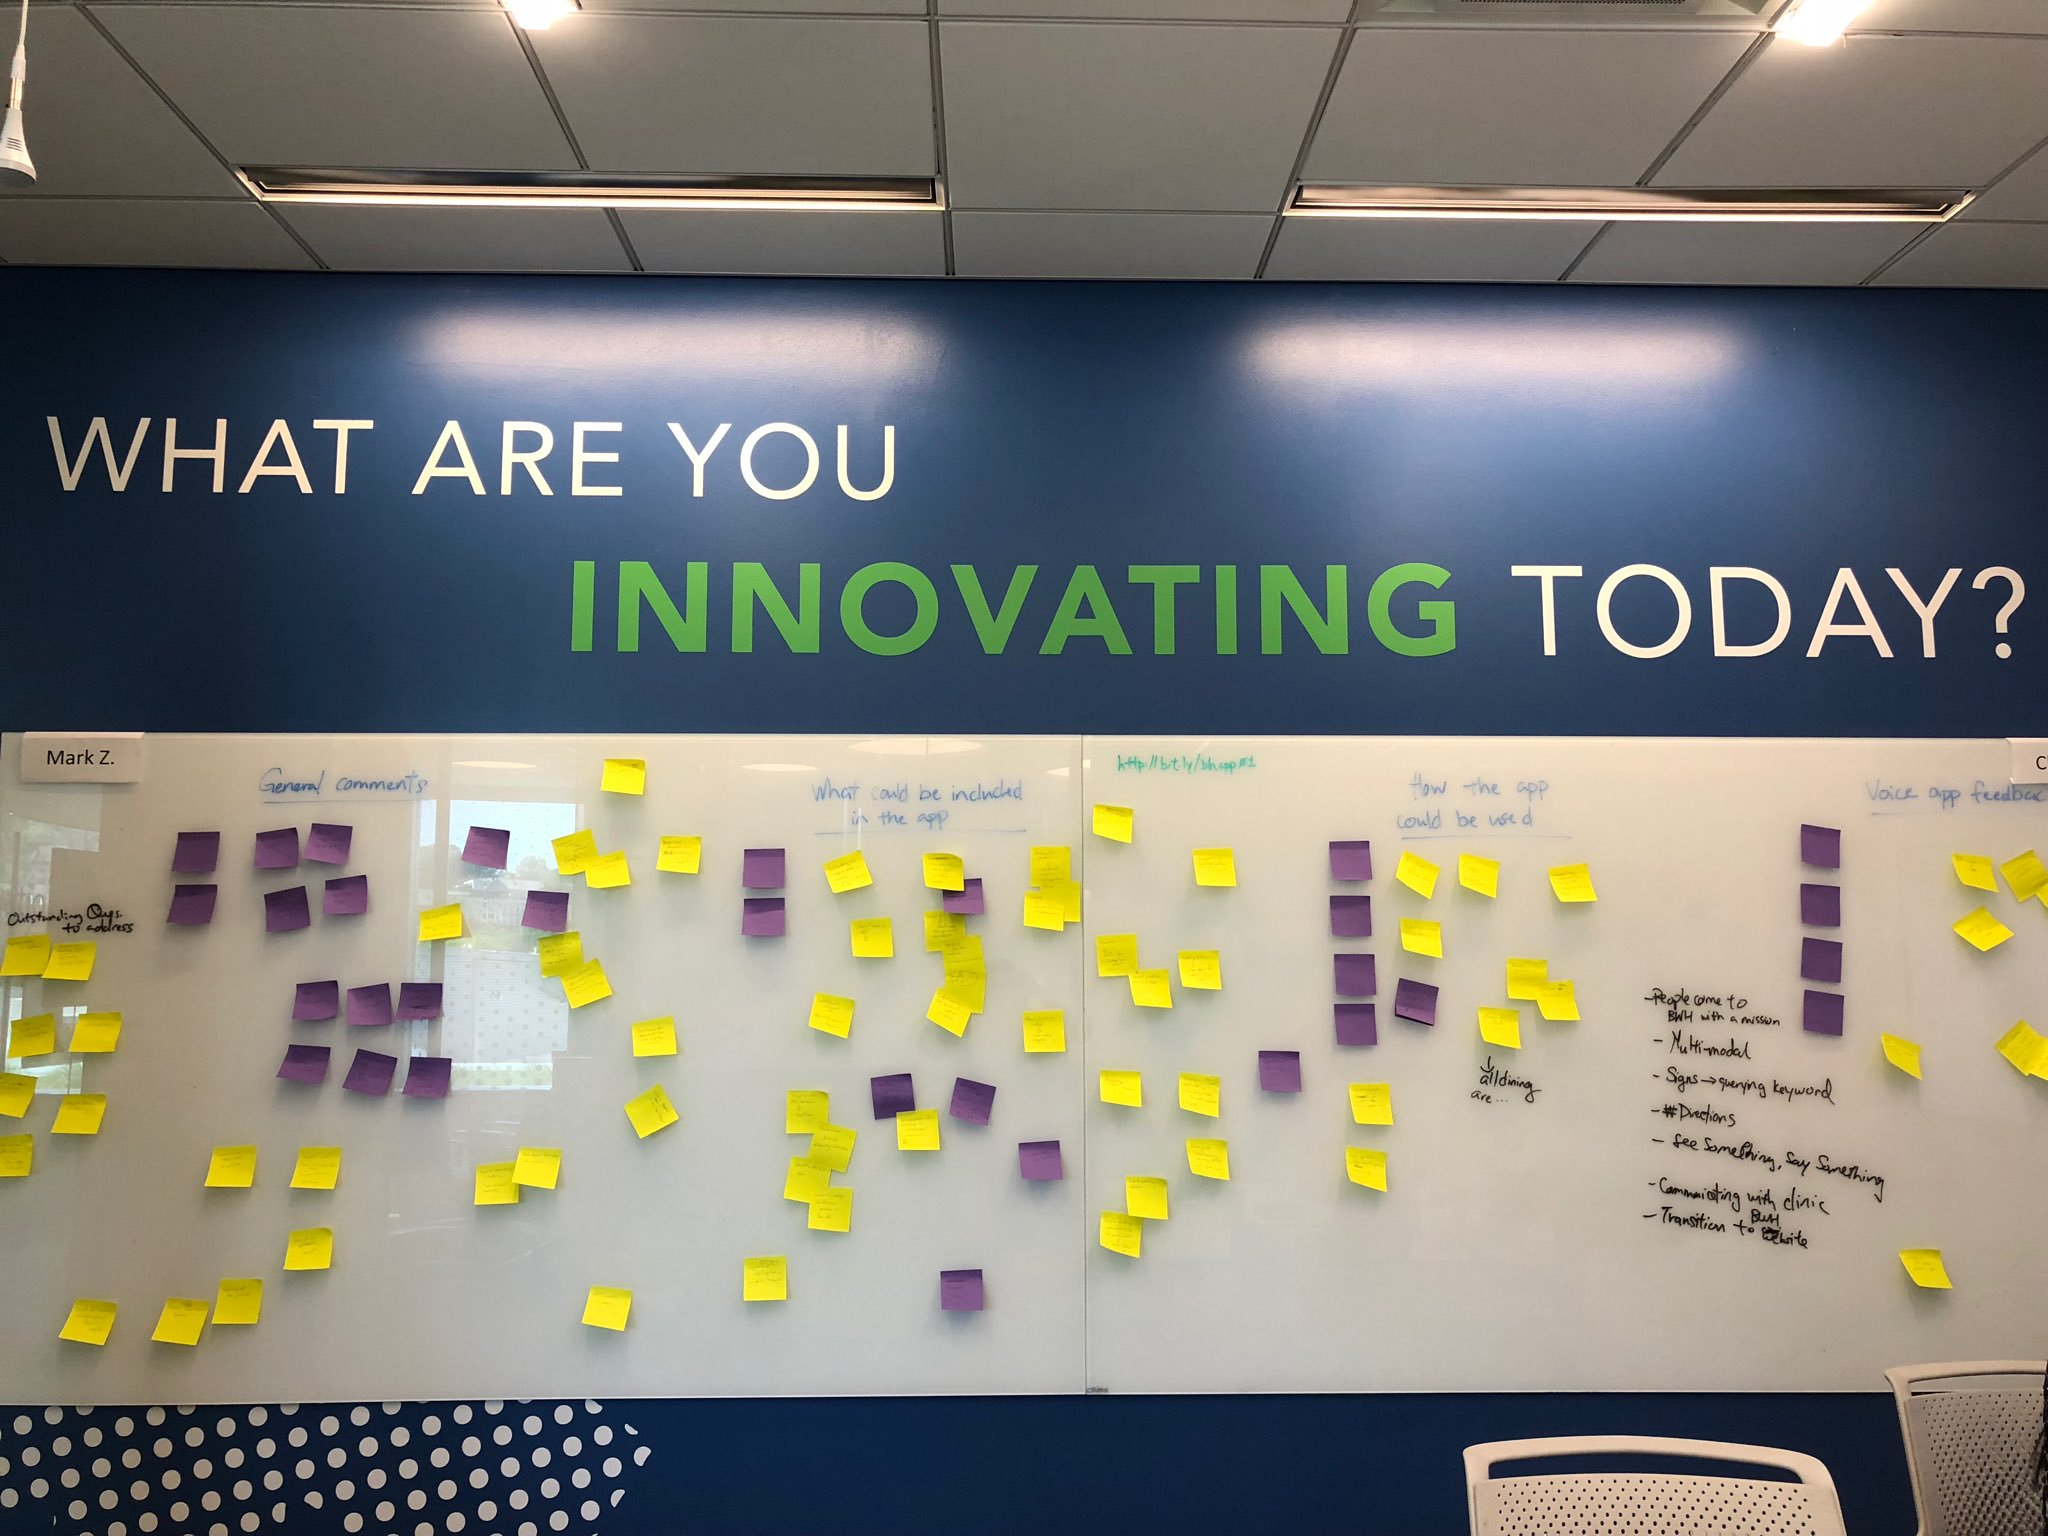 You Can Do A Lot With A Small Team: 2018 iHub Year In Review